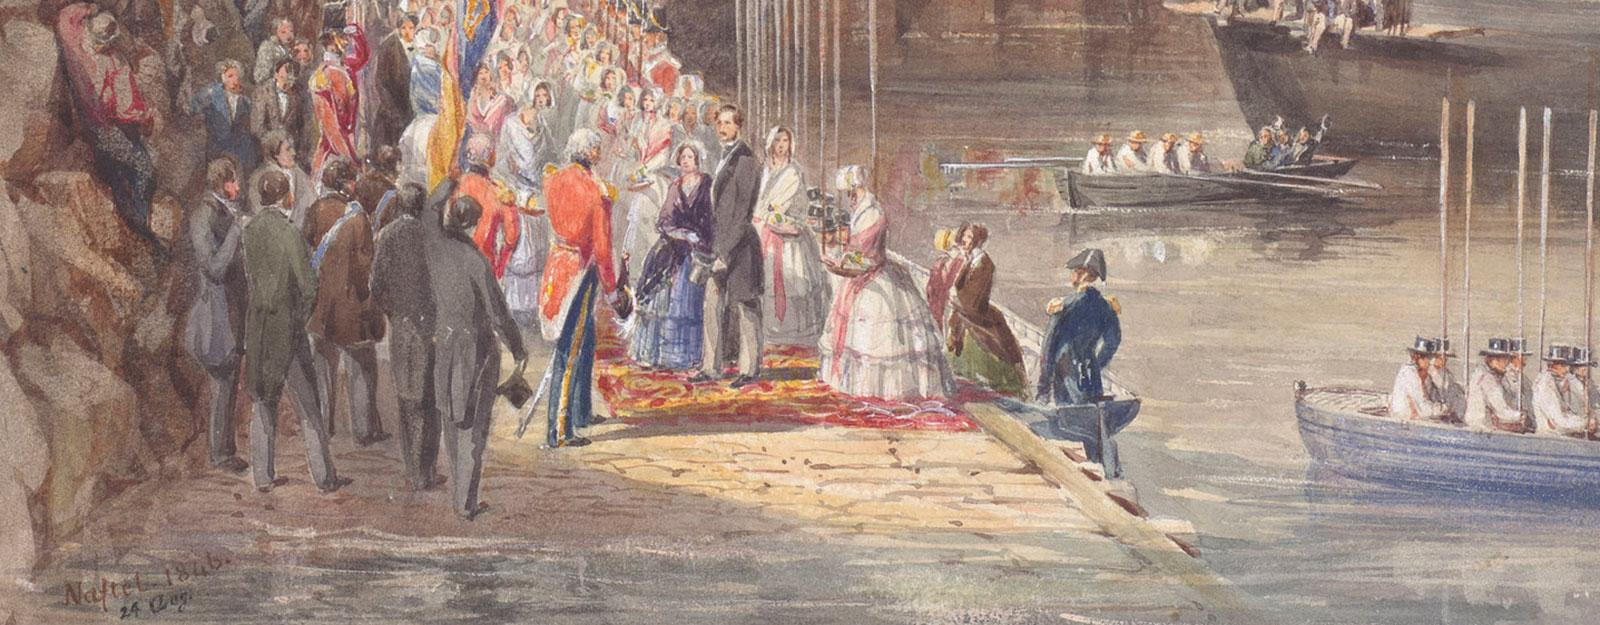 Queen Victoria & Prince Albert: Our lives in watercolour